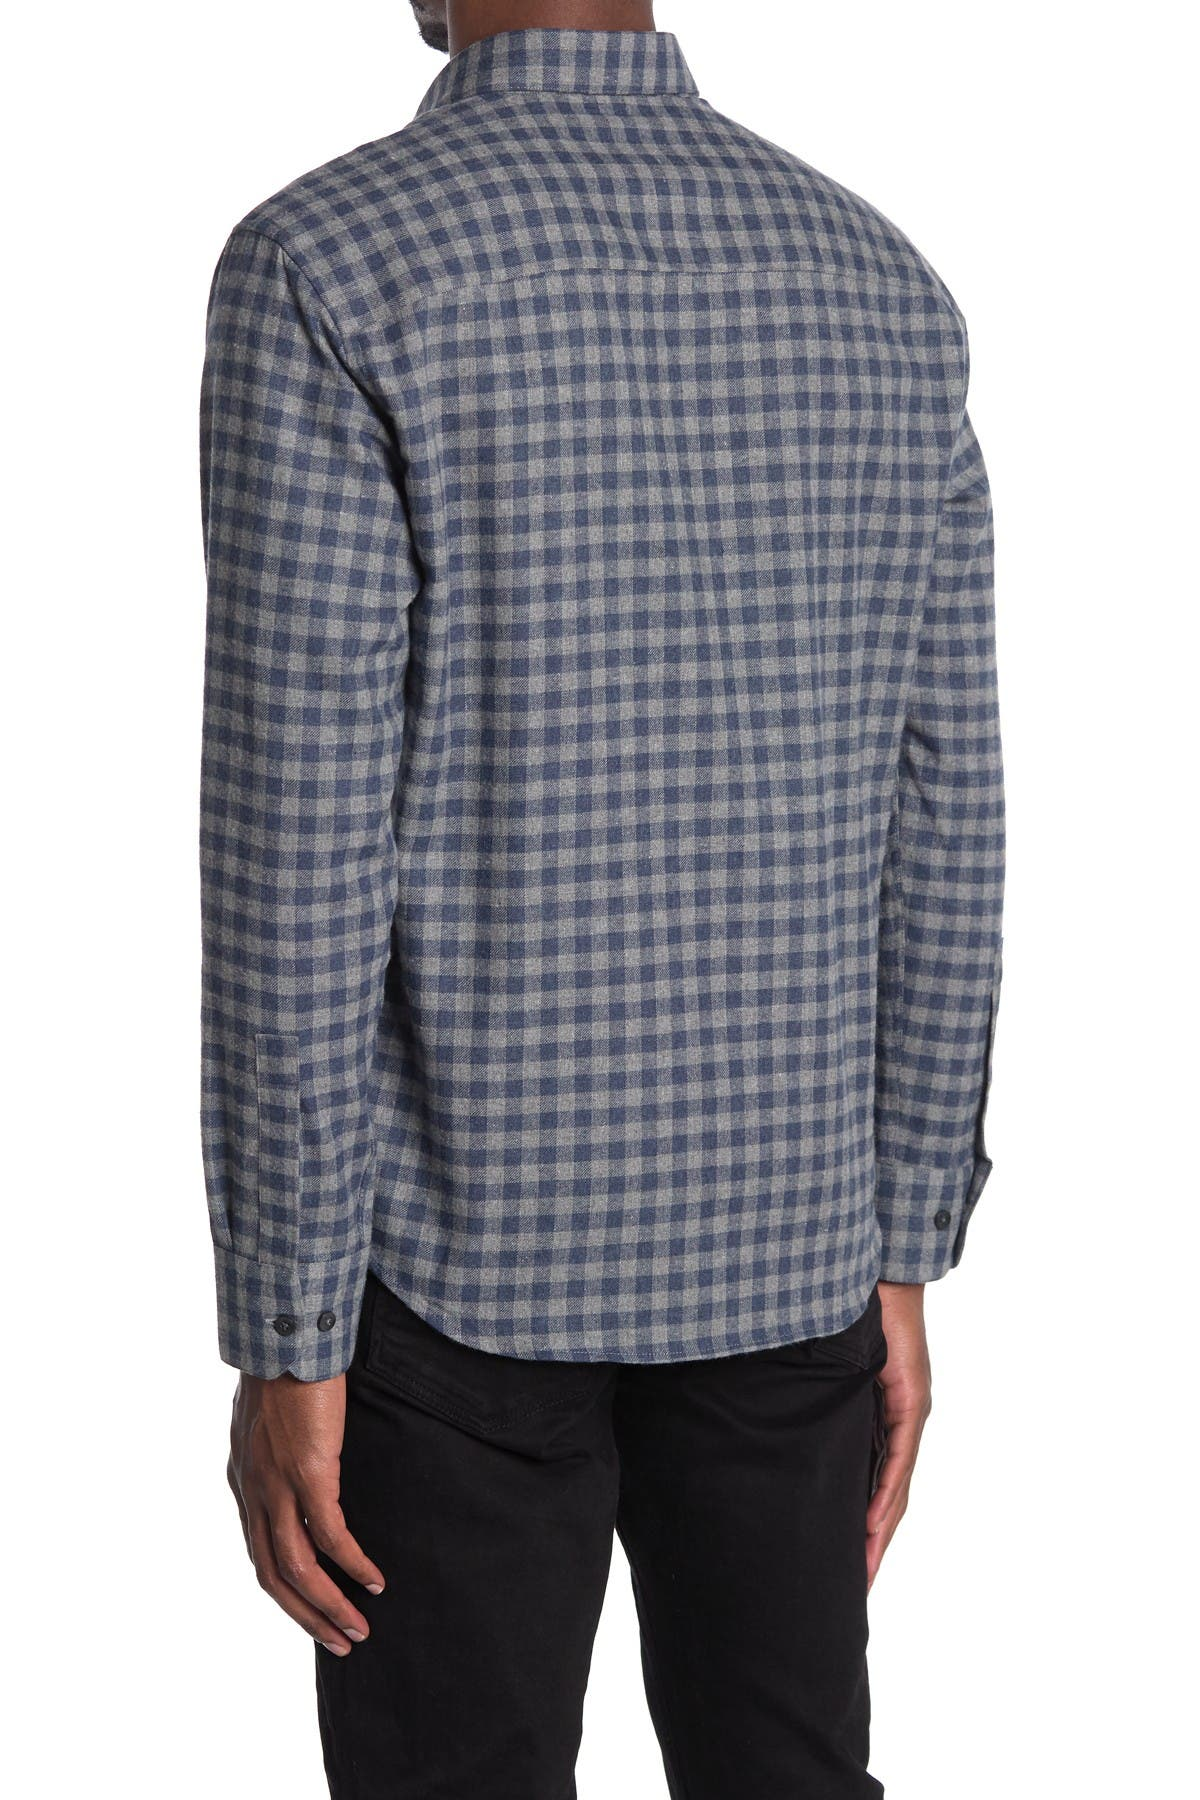 Image of ROBERT BARAKETT Branchview Long Sleeve Woven Shirt